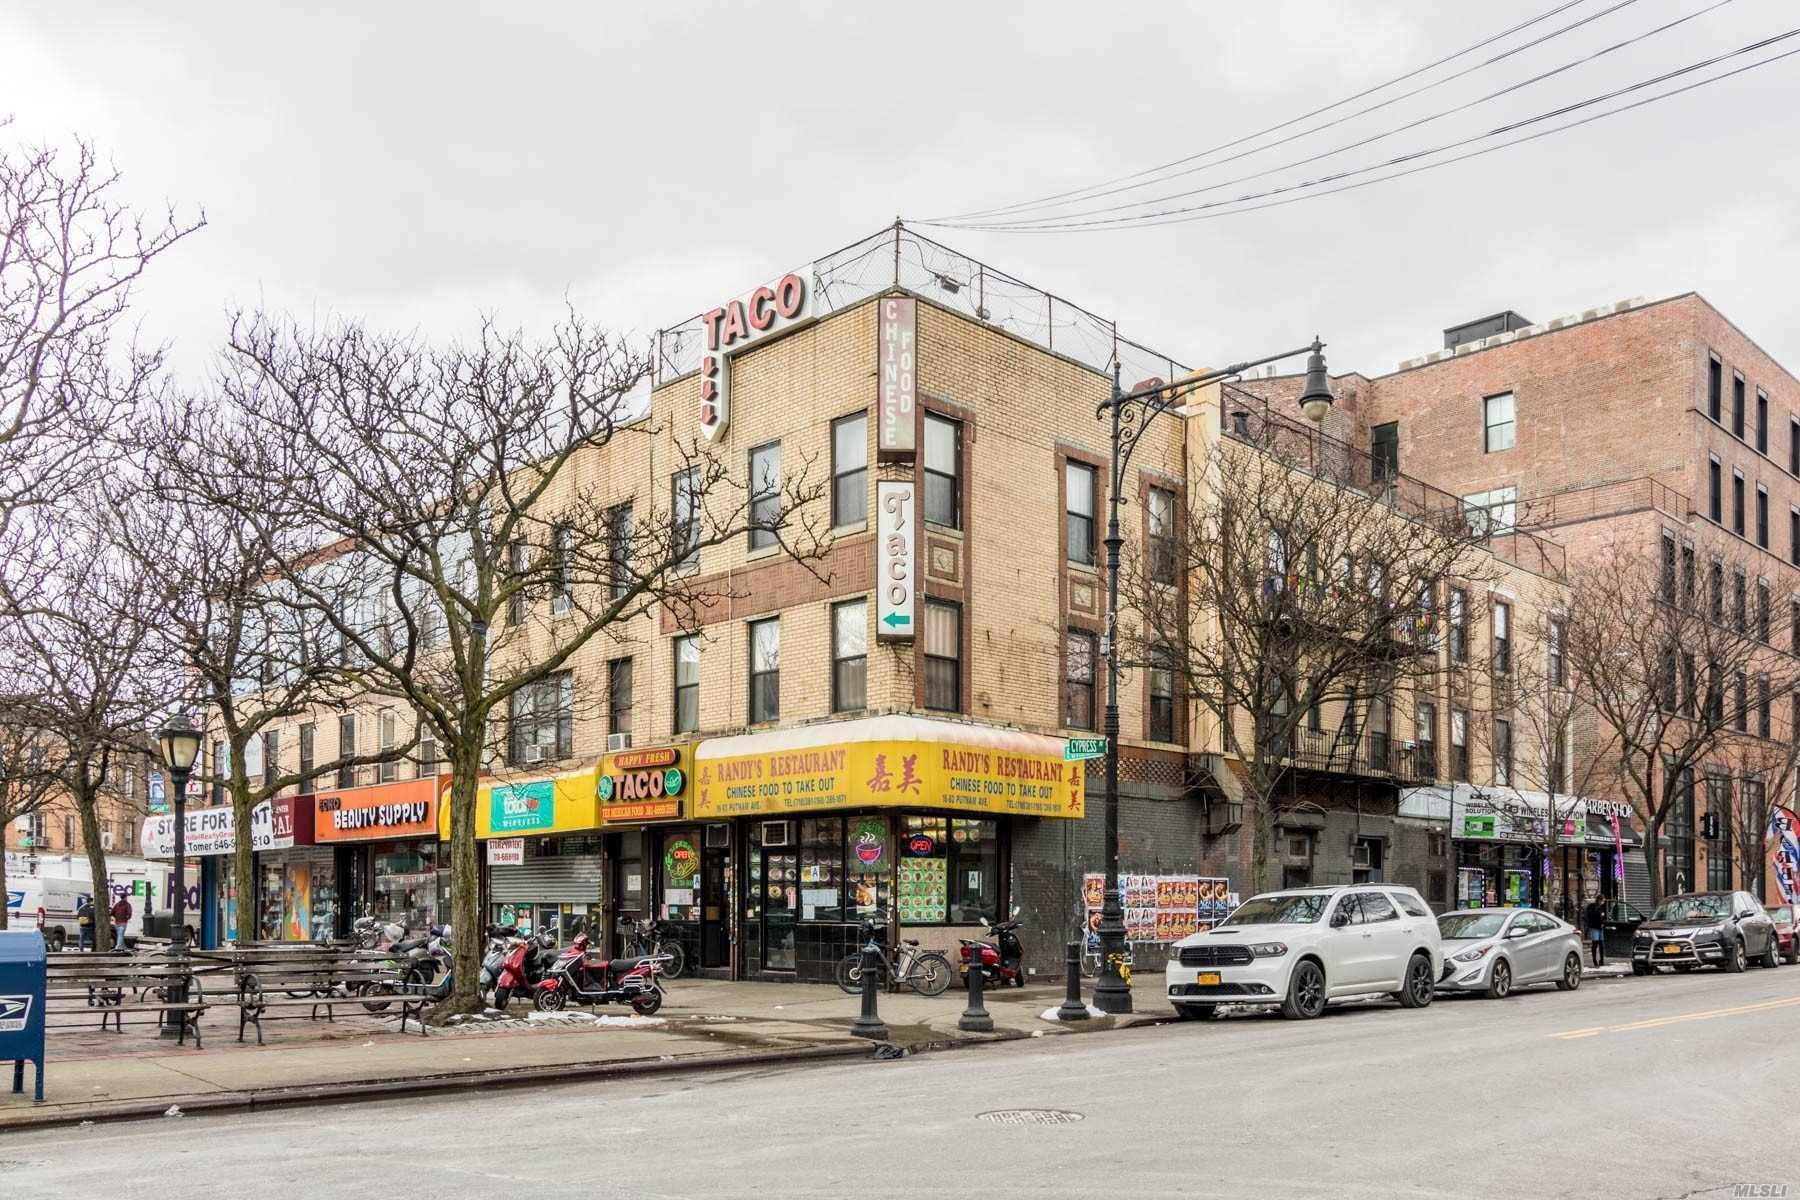 Corner Lot Mix-Used Commercial Located In Prime Location With Heavy Traffic. 4 Retails With 4 Apartments. The Rent Is Way Below Market Value. Huge Potential, Estimate Cap Rate Over 6%. Great For Investors.